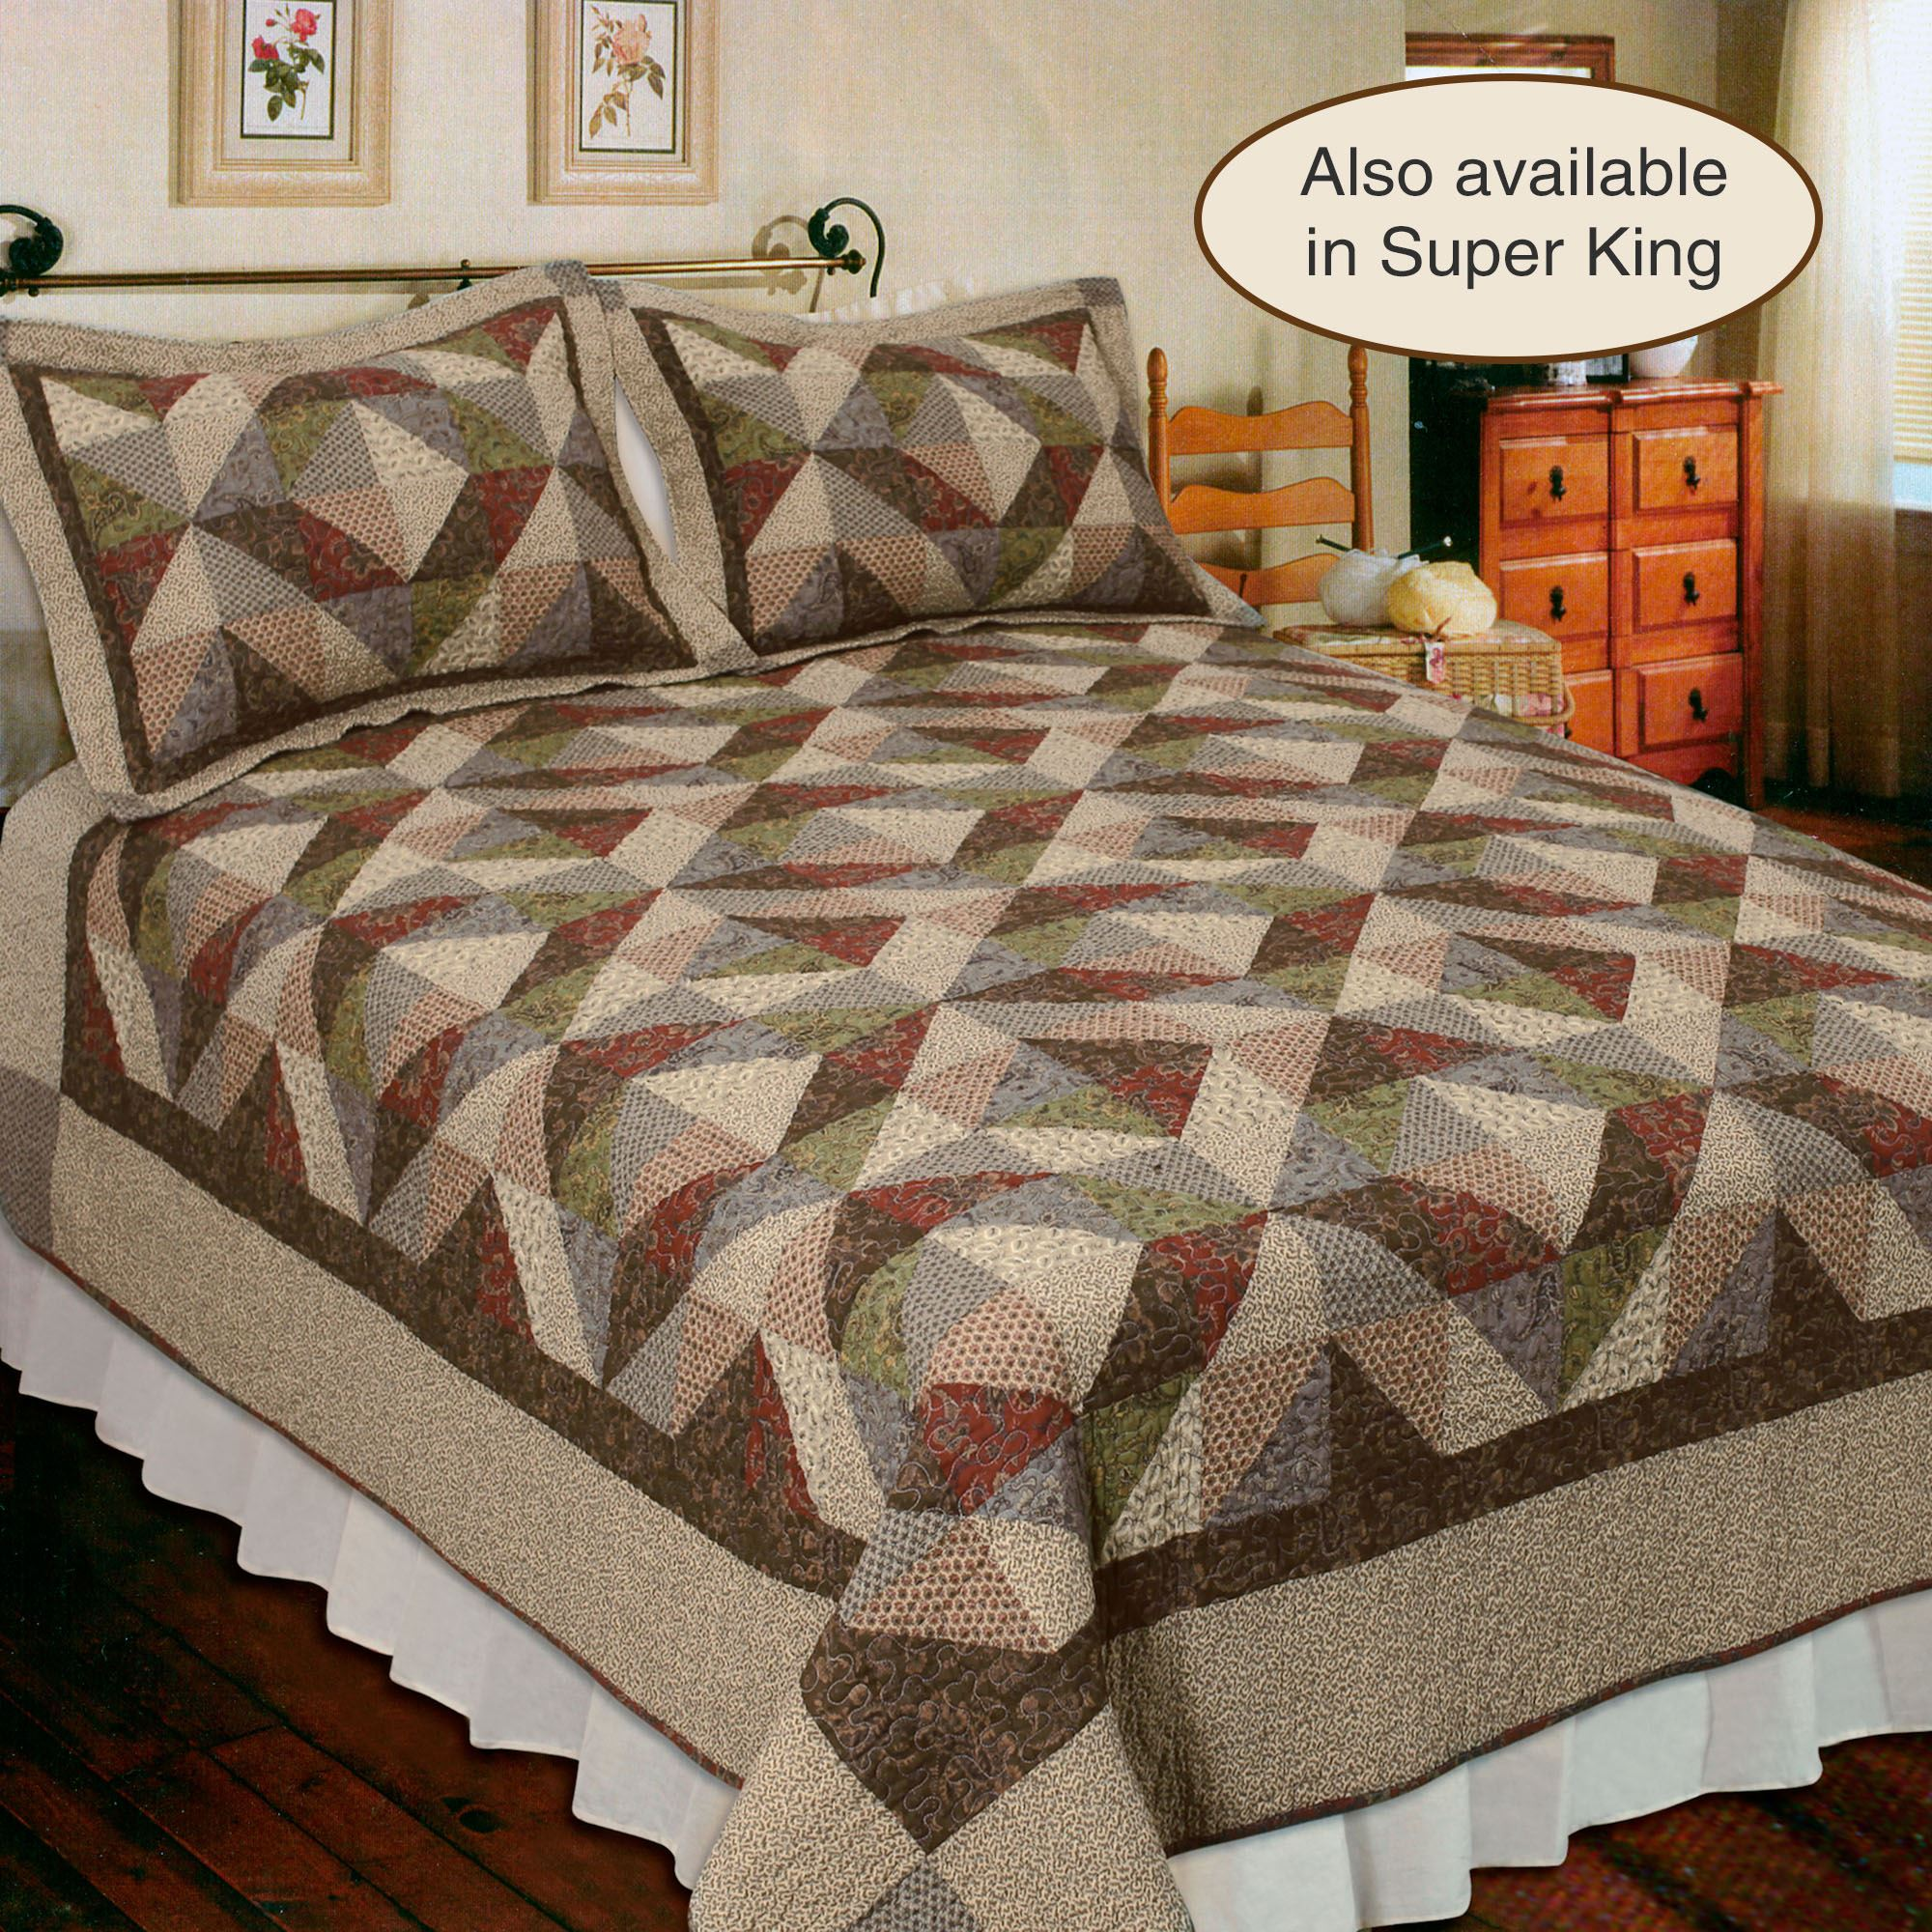 Country Cottage Cotton Patchwork Quilt Bedding : country quilts and bedding - Adamdwight.com